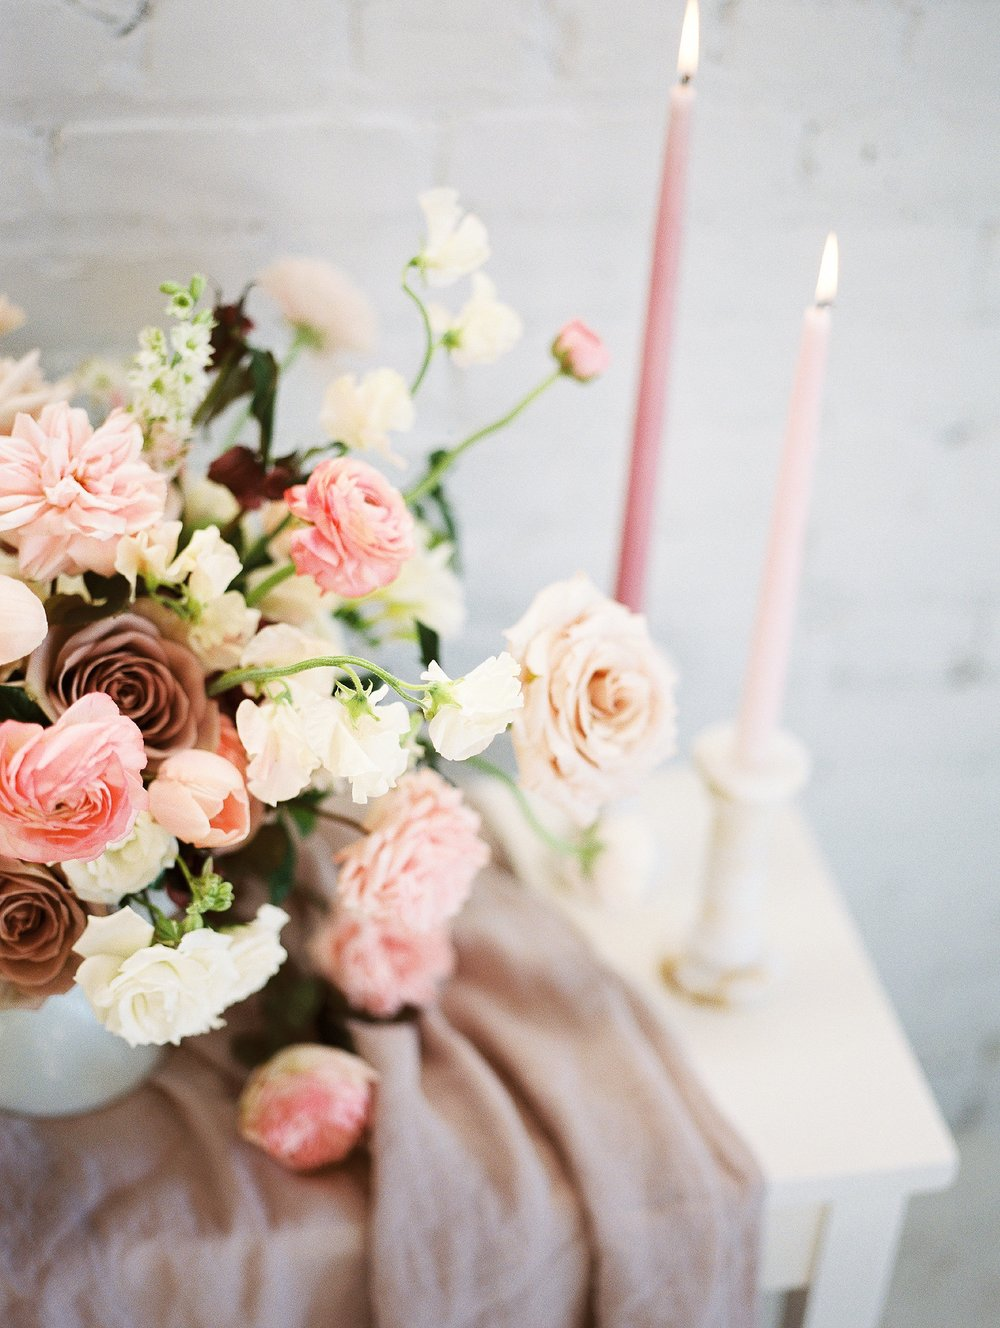 Winnipeg Wedding Photographer Keila Marie Photography | Academy Florist | Floral details